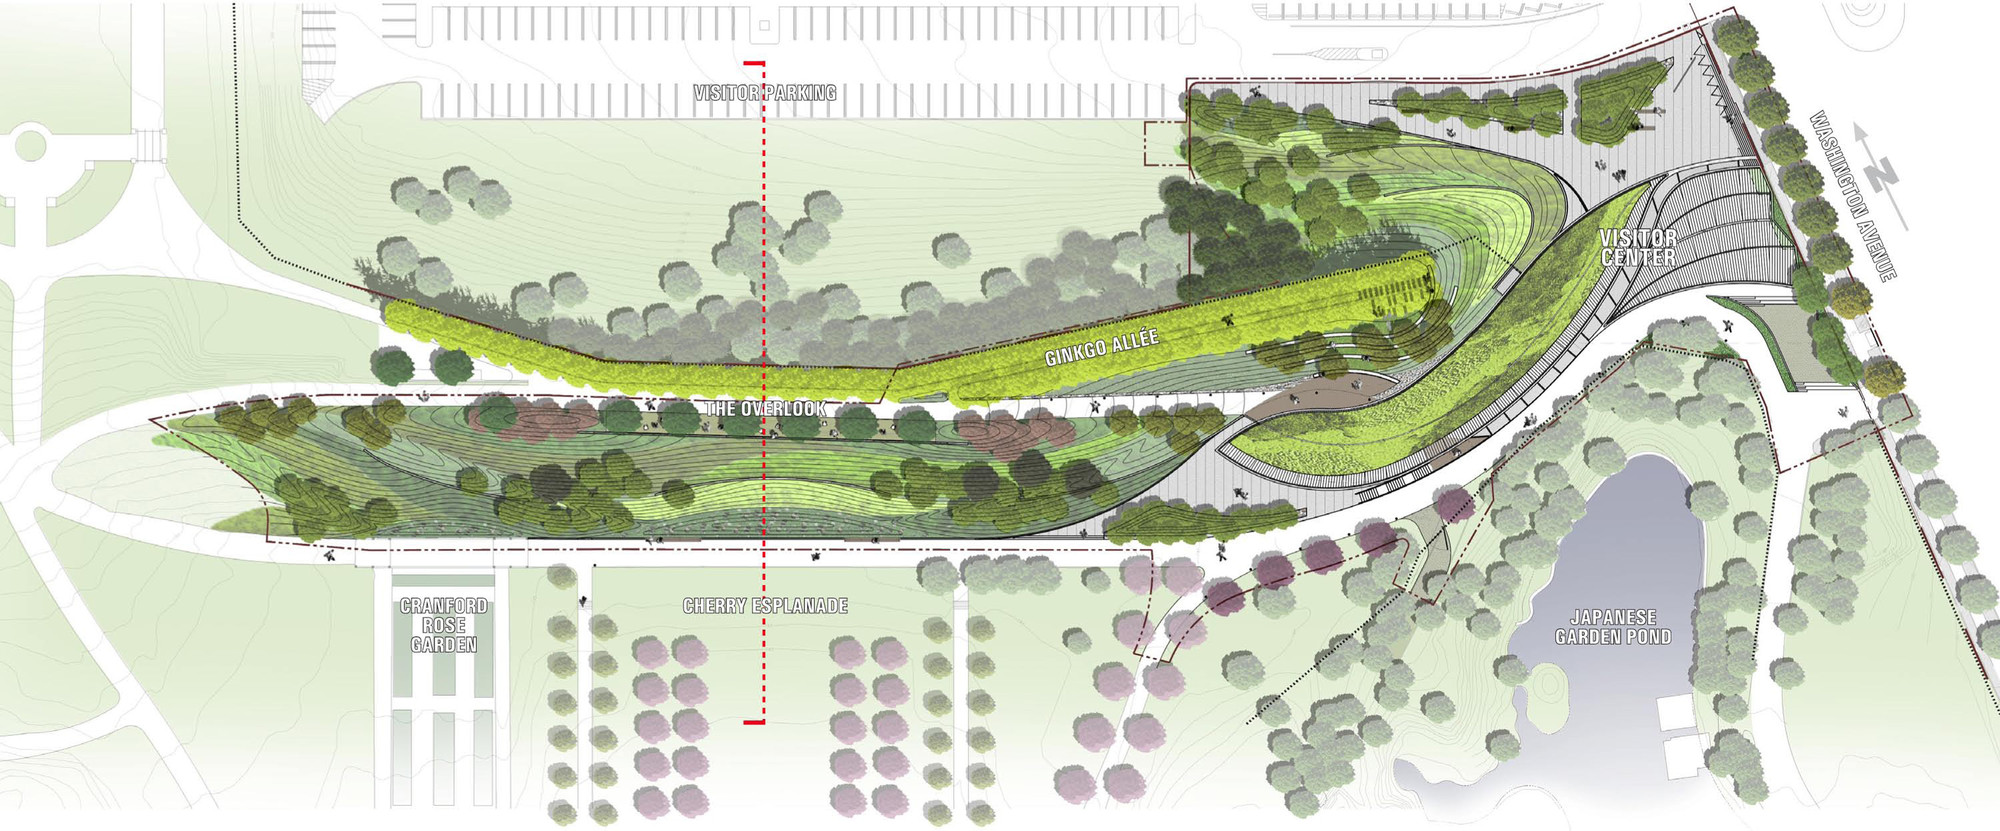 Brooklyn botanic garden visitor center weiss manfredi for The landscape design site